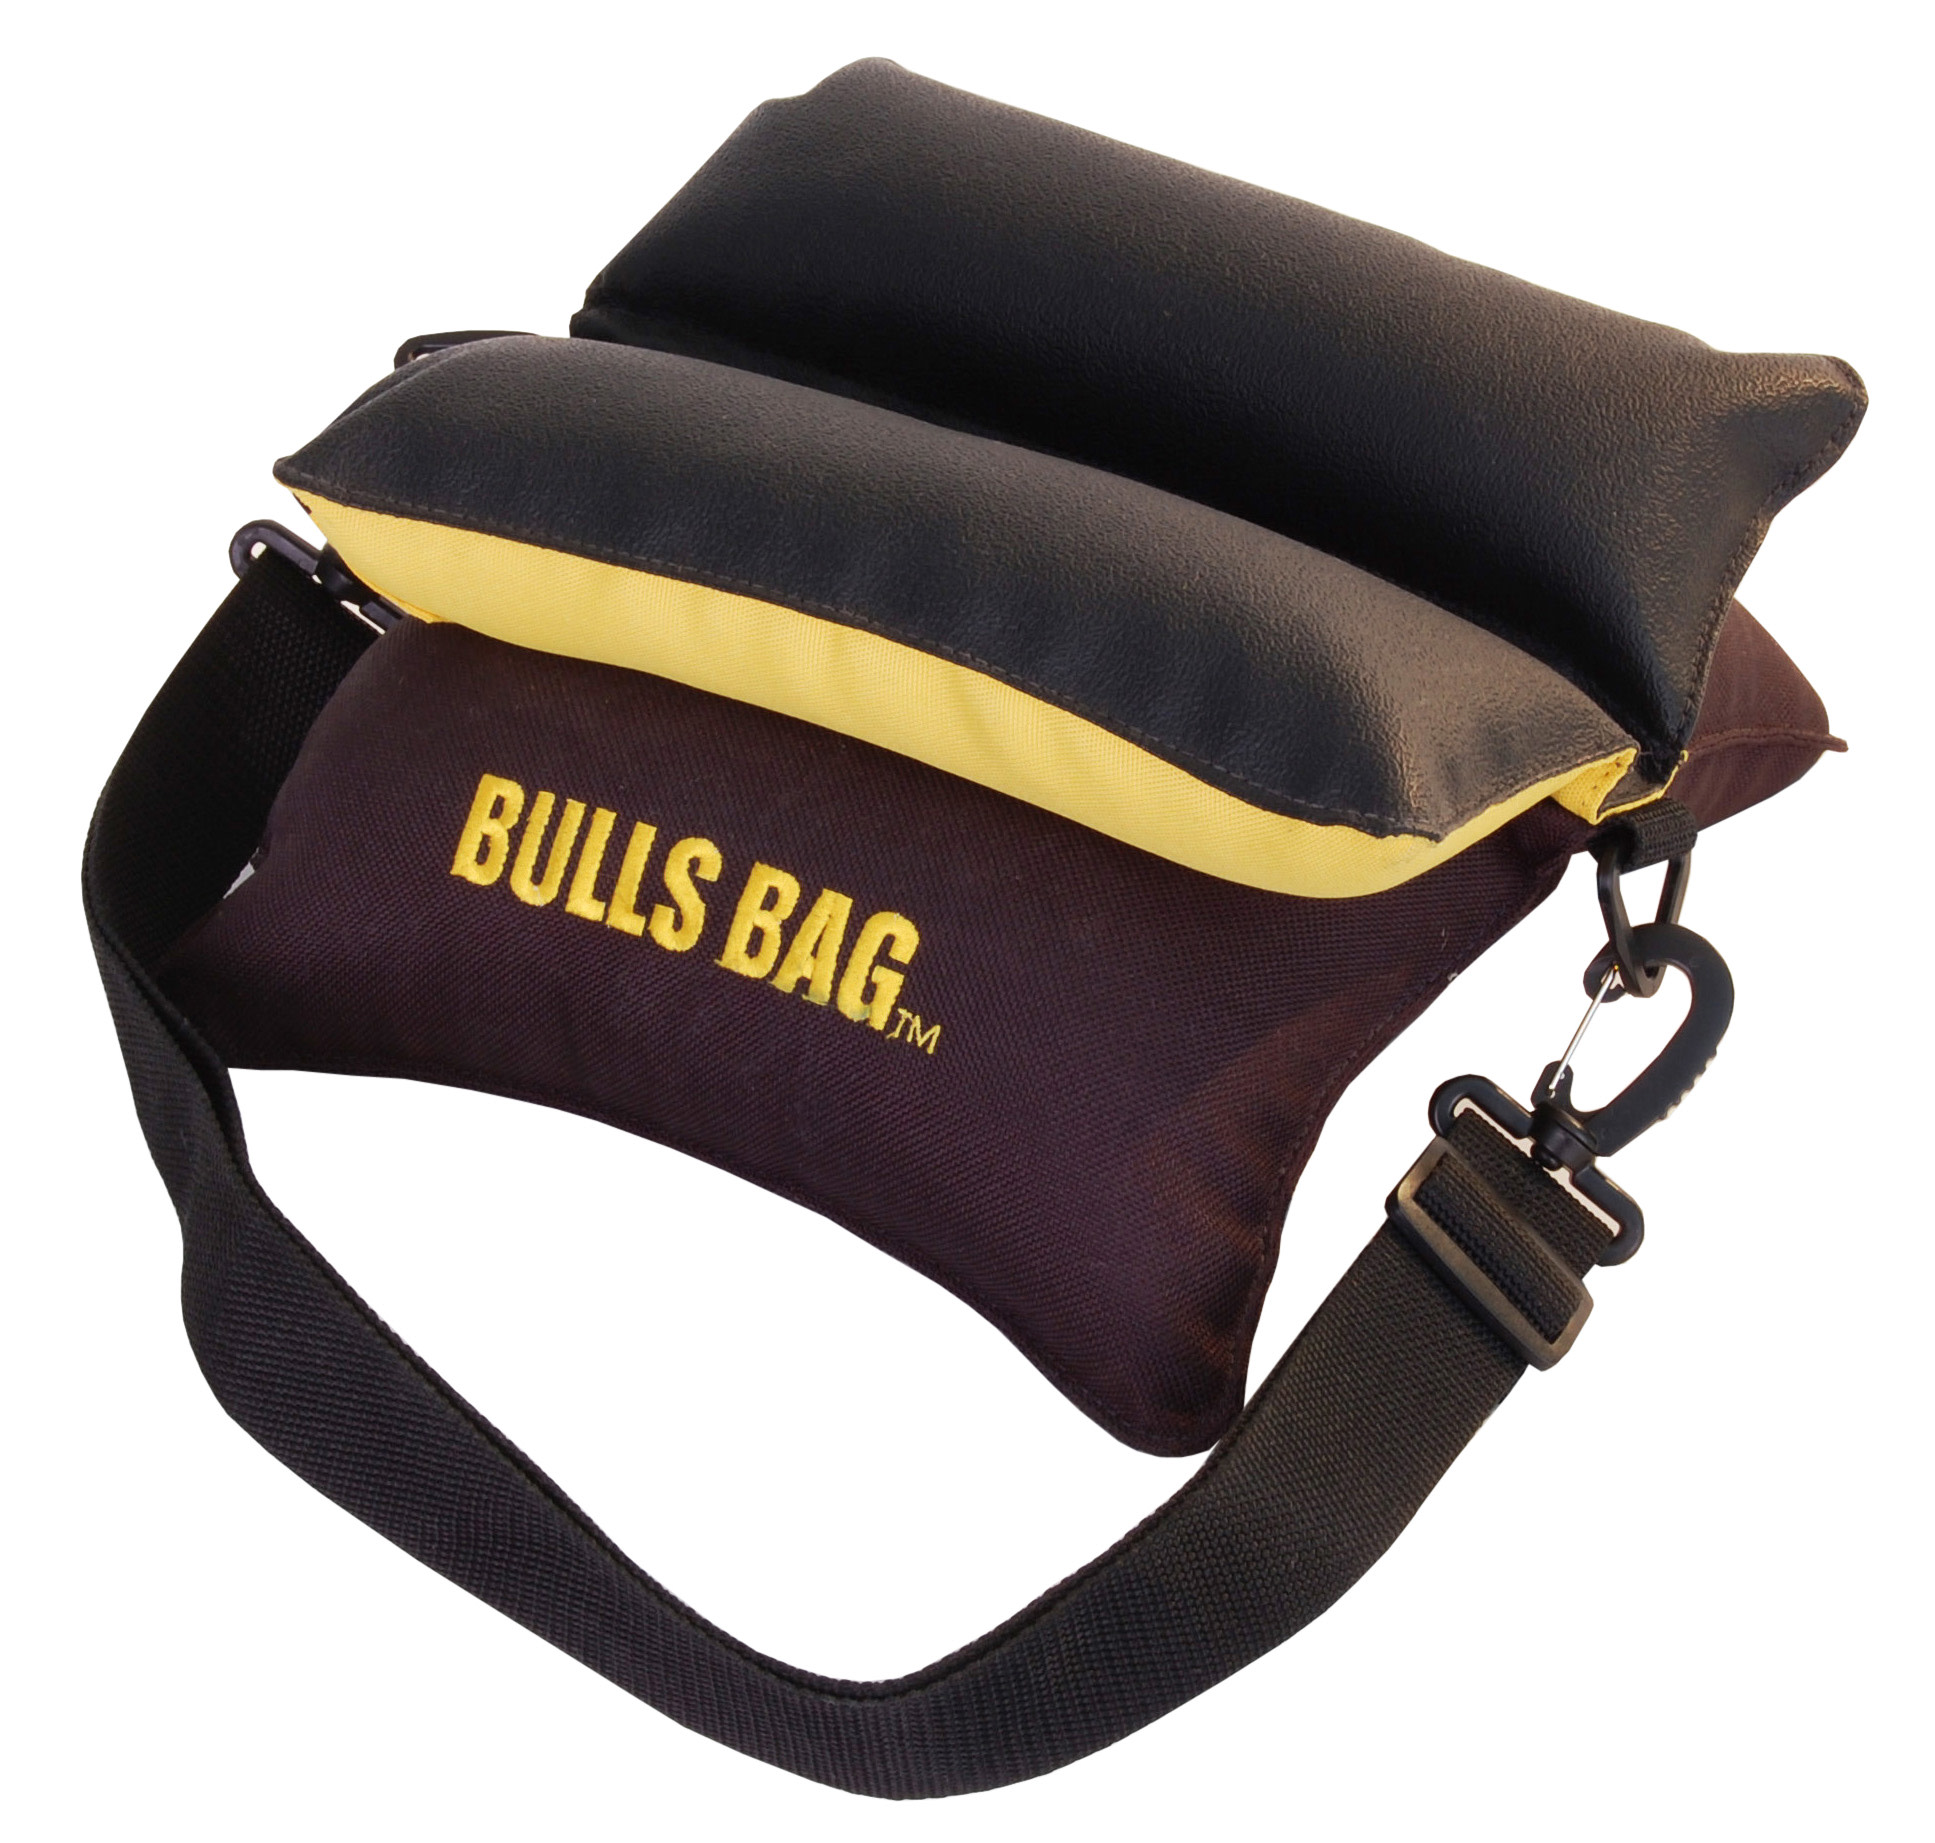 Bulls Bag Tuff-Tec Field Shooting Rest - 10